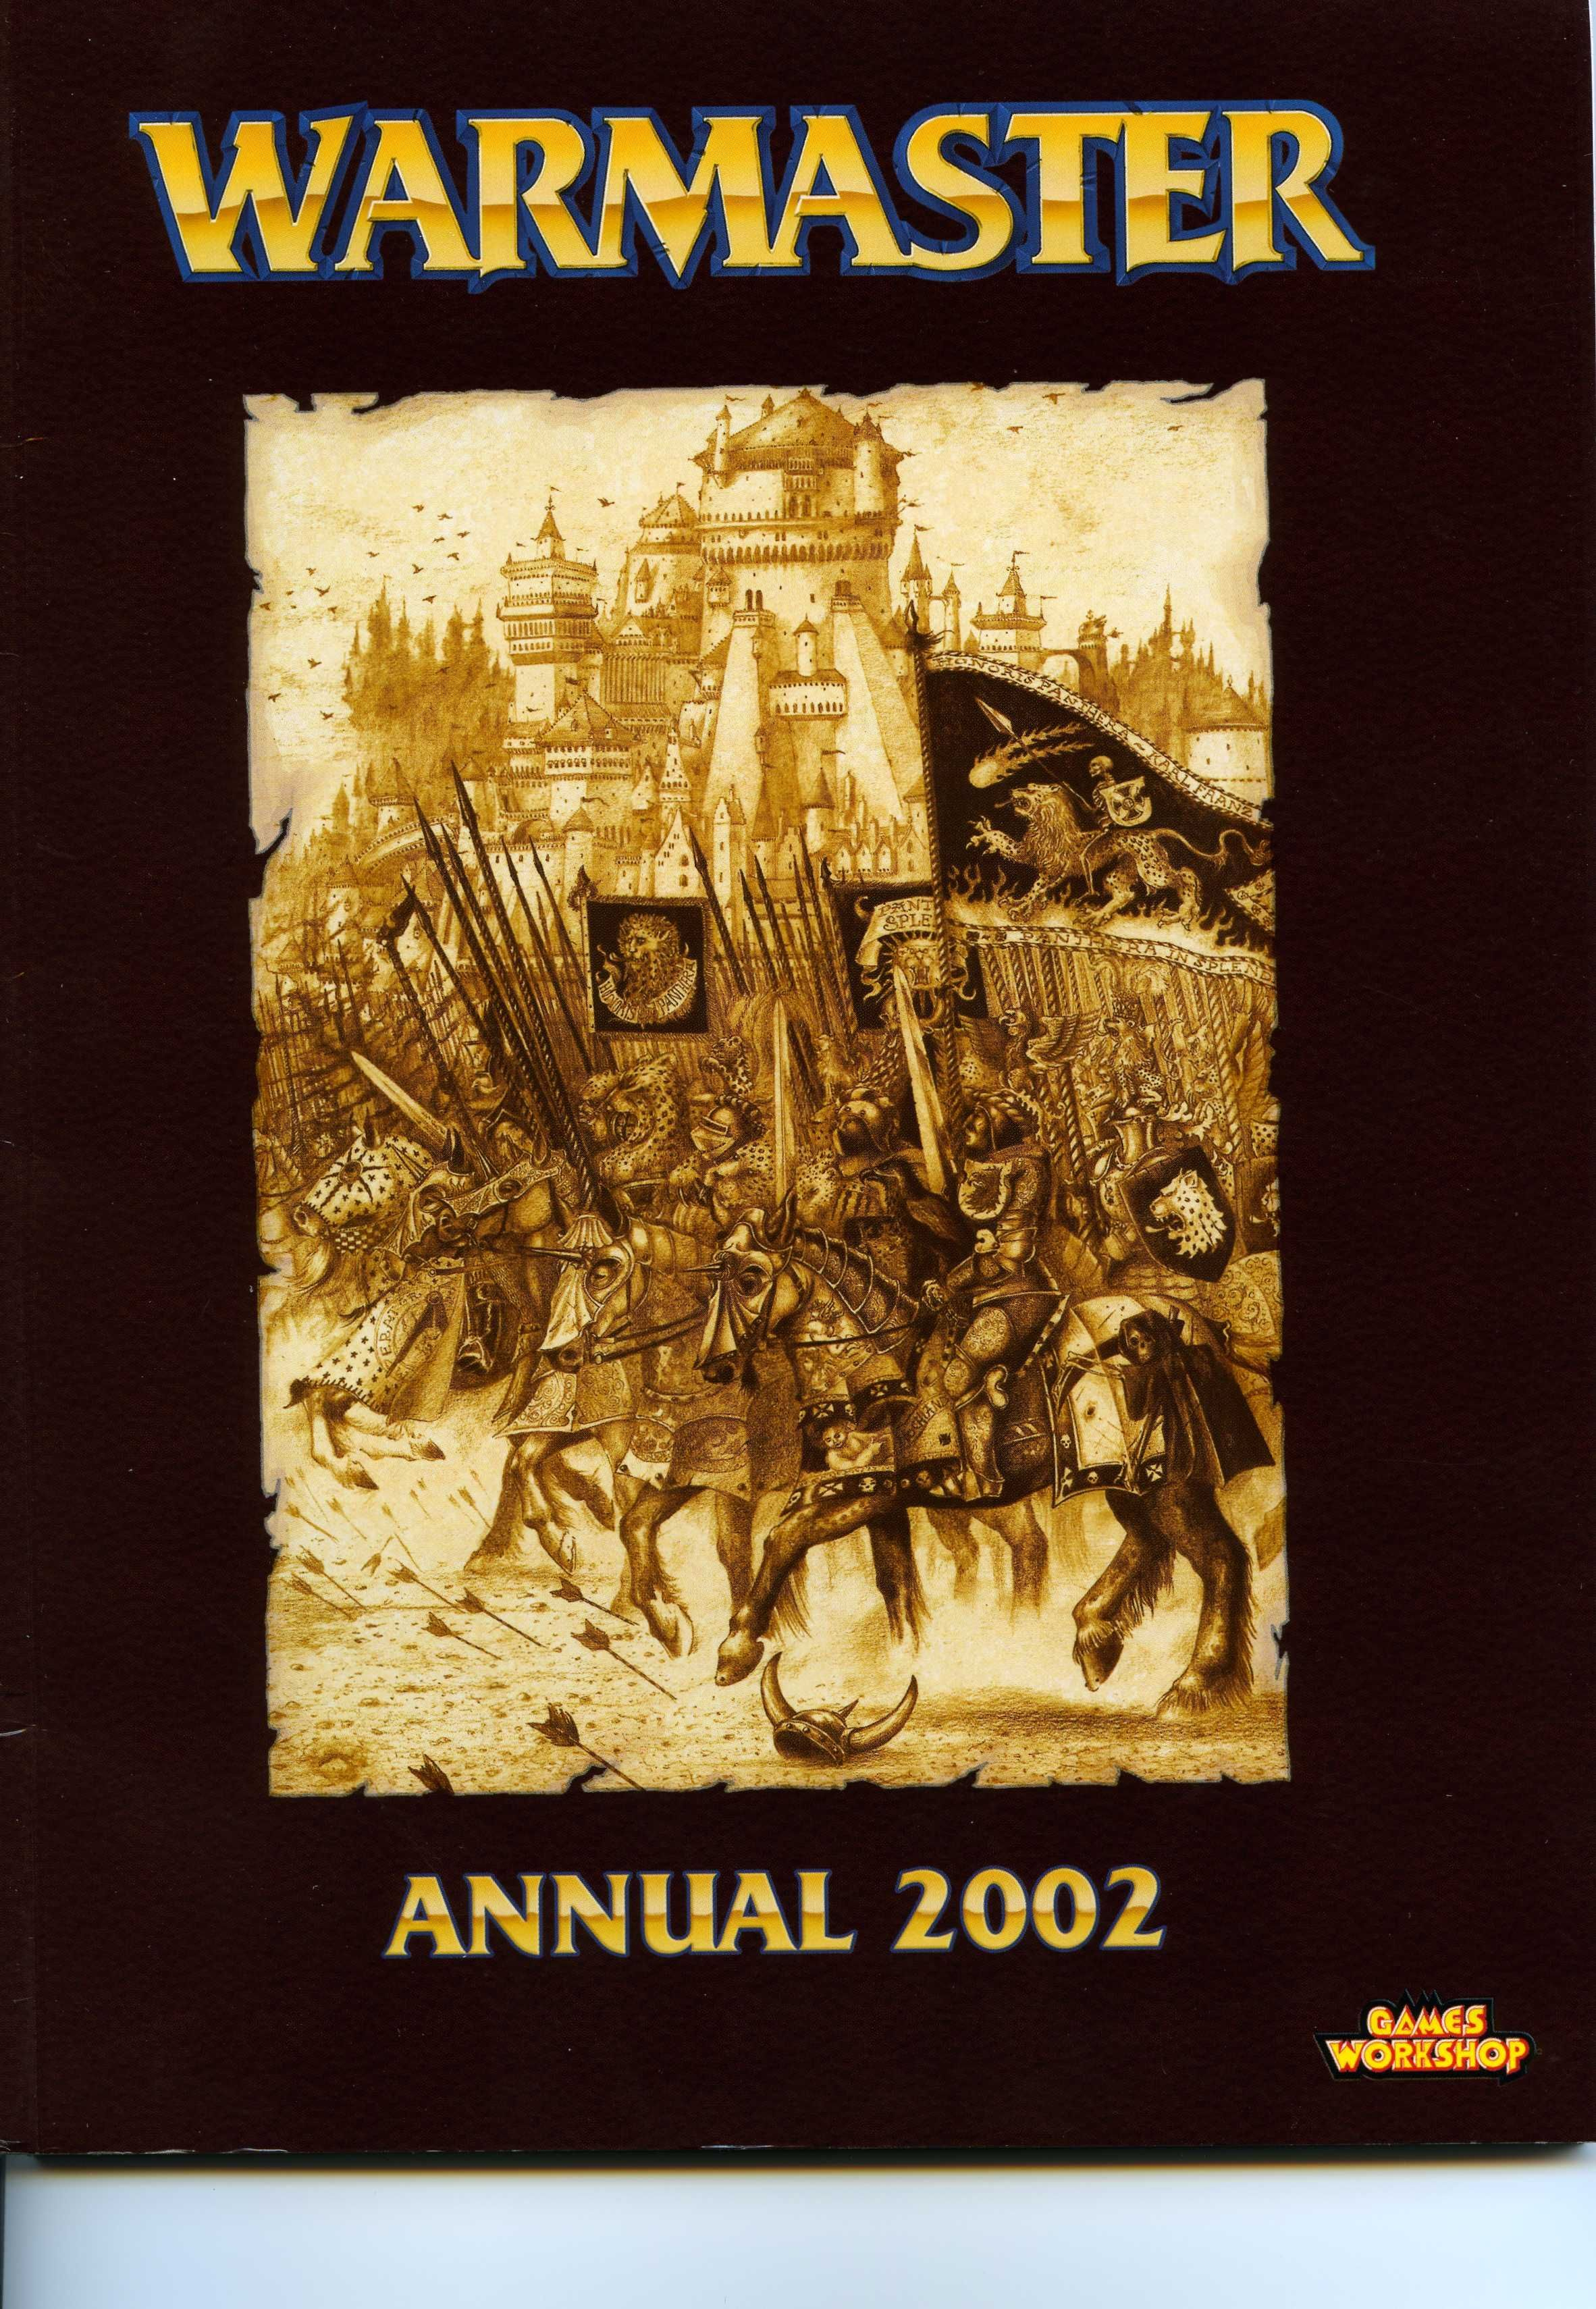 Warmaster Annual 2002